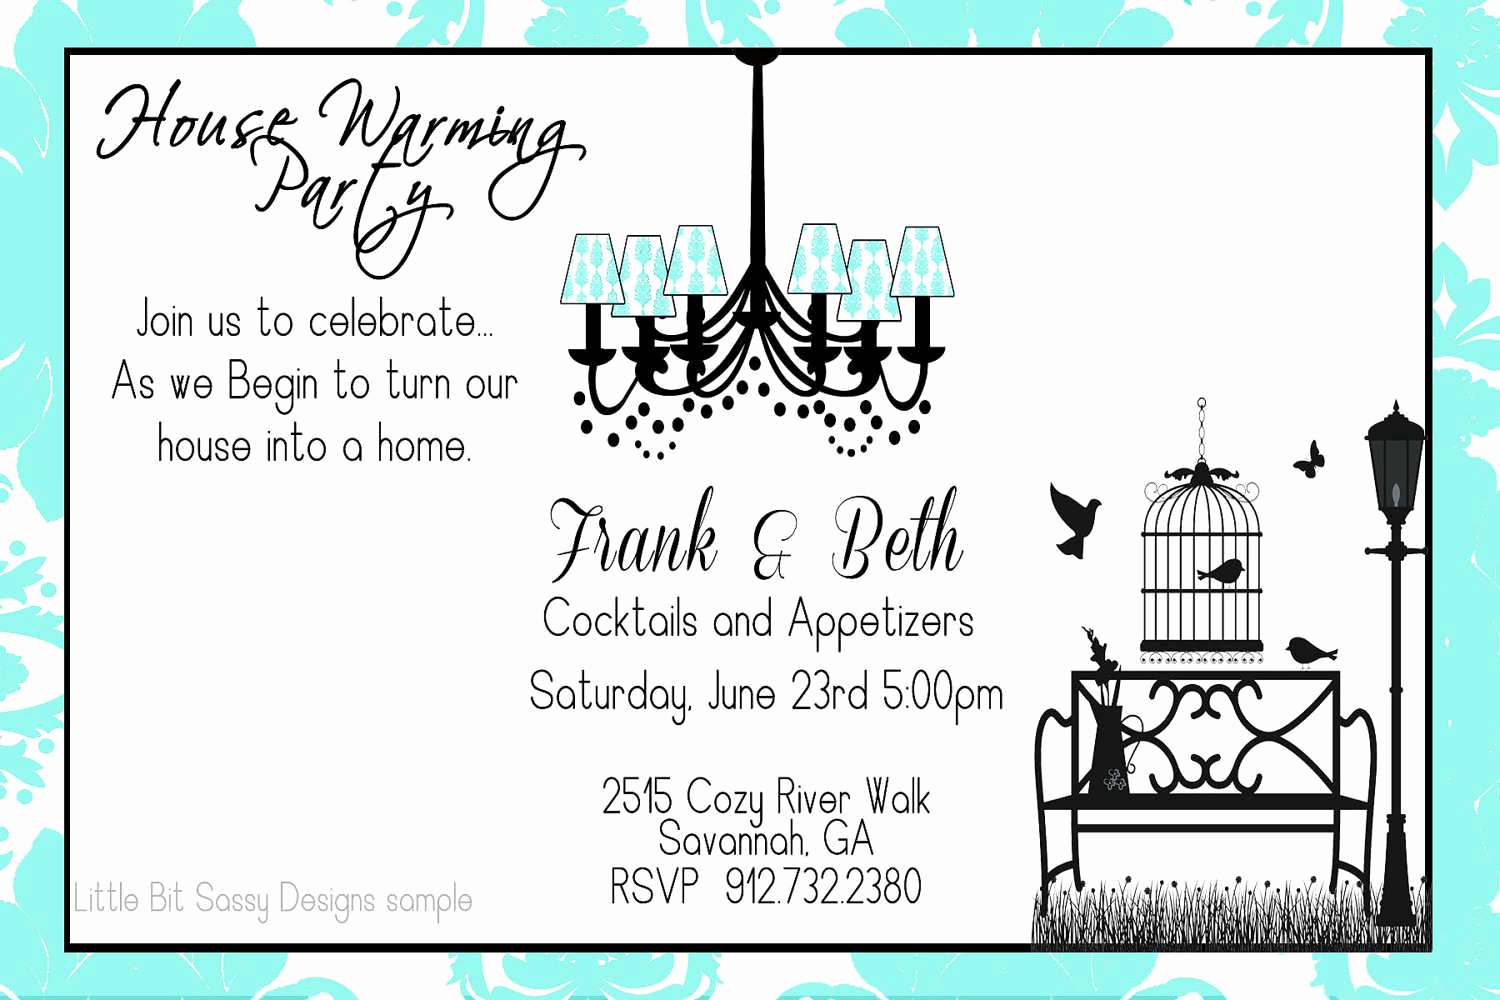 Housewarming Party Invitation Wording Lovely Housewarming Party Invitation Wording